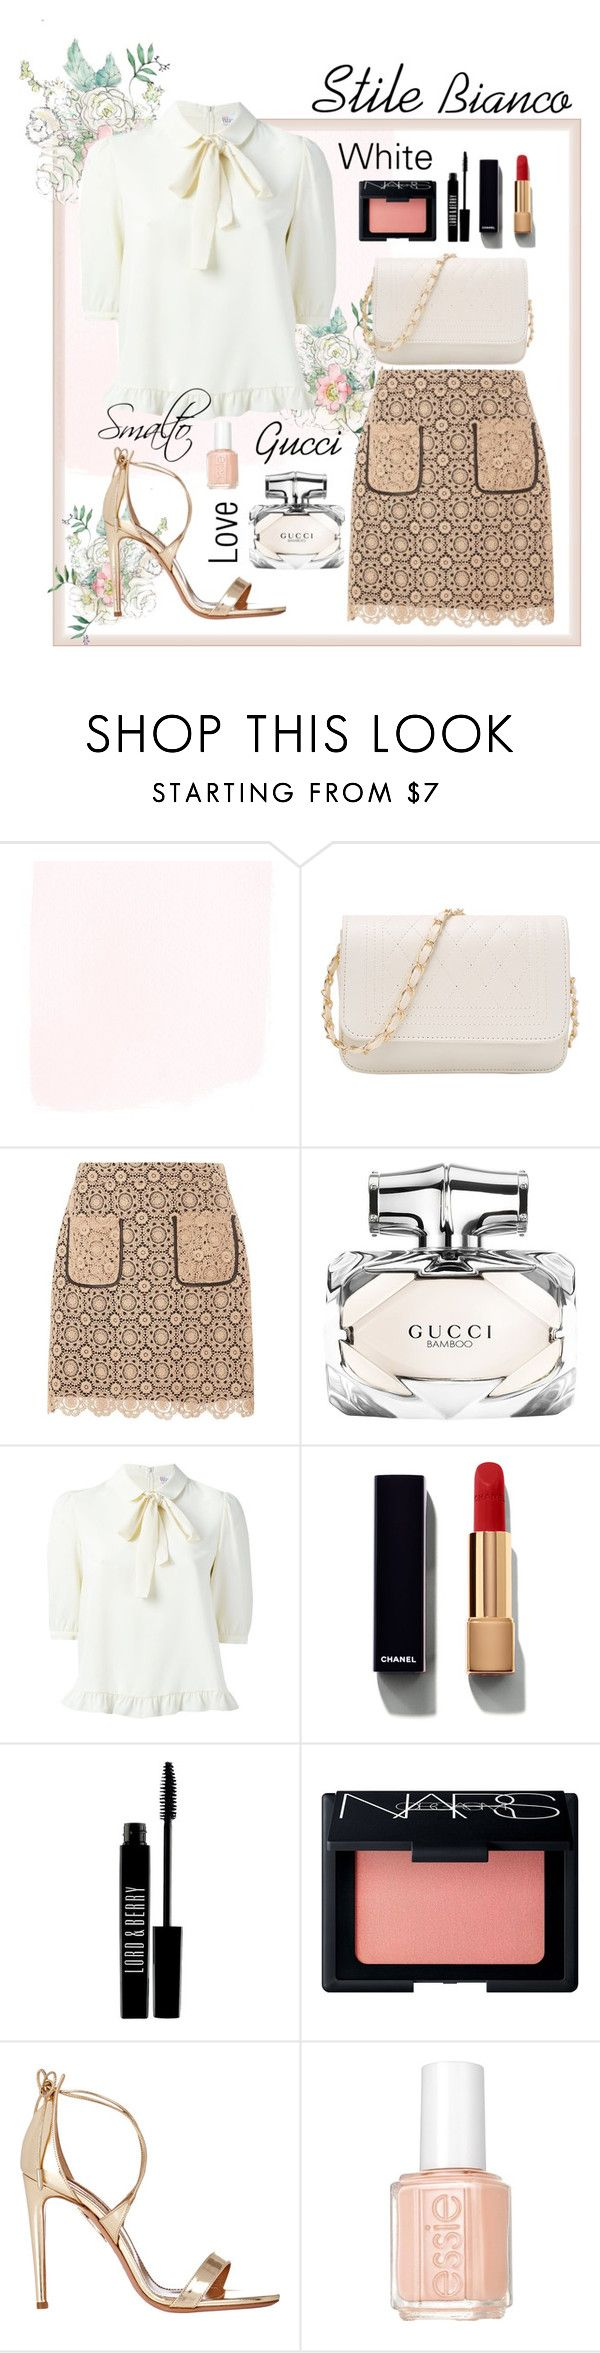 """Stile Bianco"" by jasmeenjk ❤ liked on Polyvore featuring Dorothy Perkins, Gucci, Chanel, Lord & Berry, NARS Cosmetics, Aquazzura and Essie"